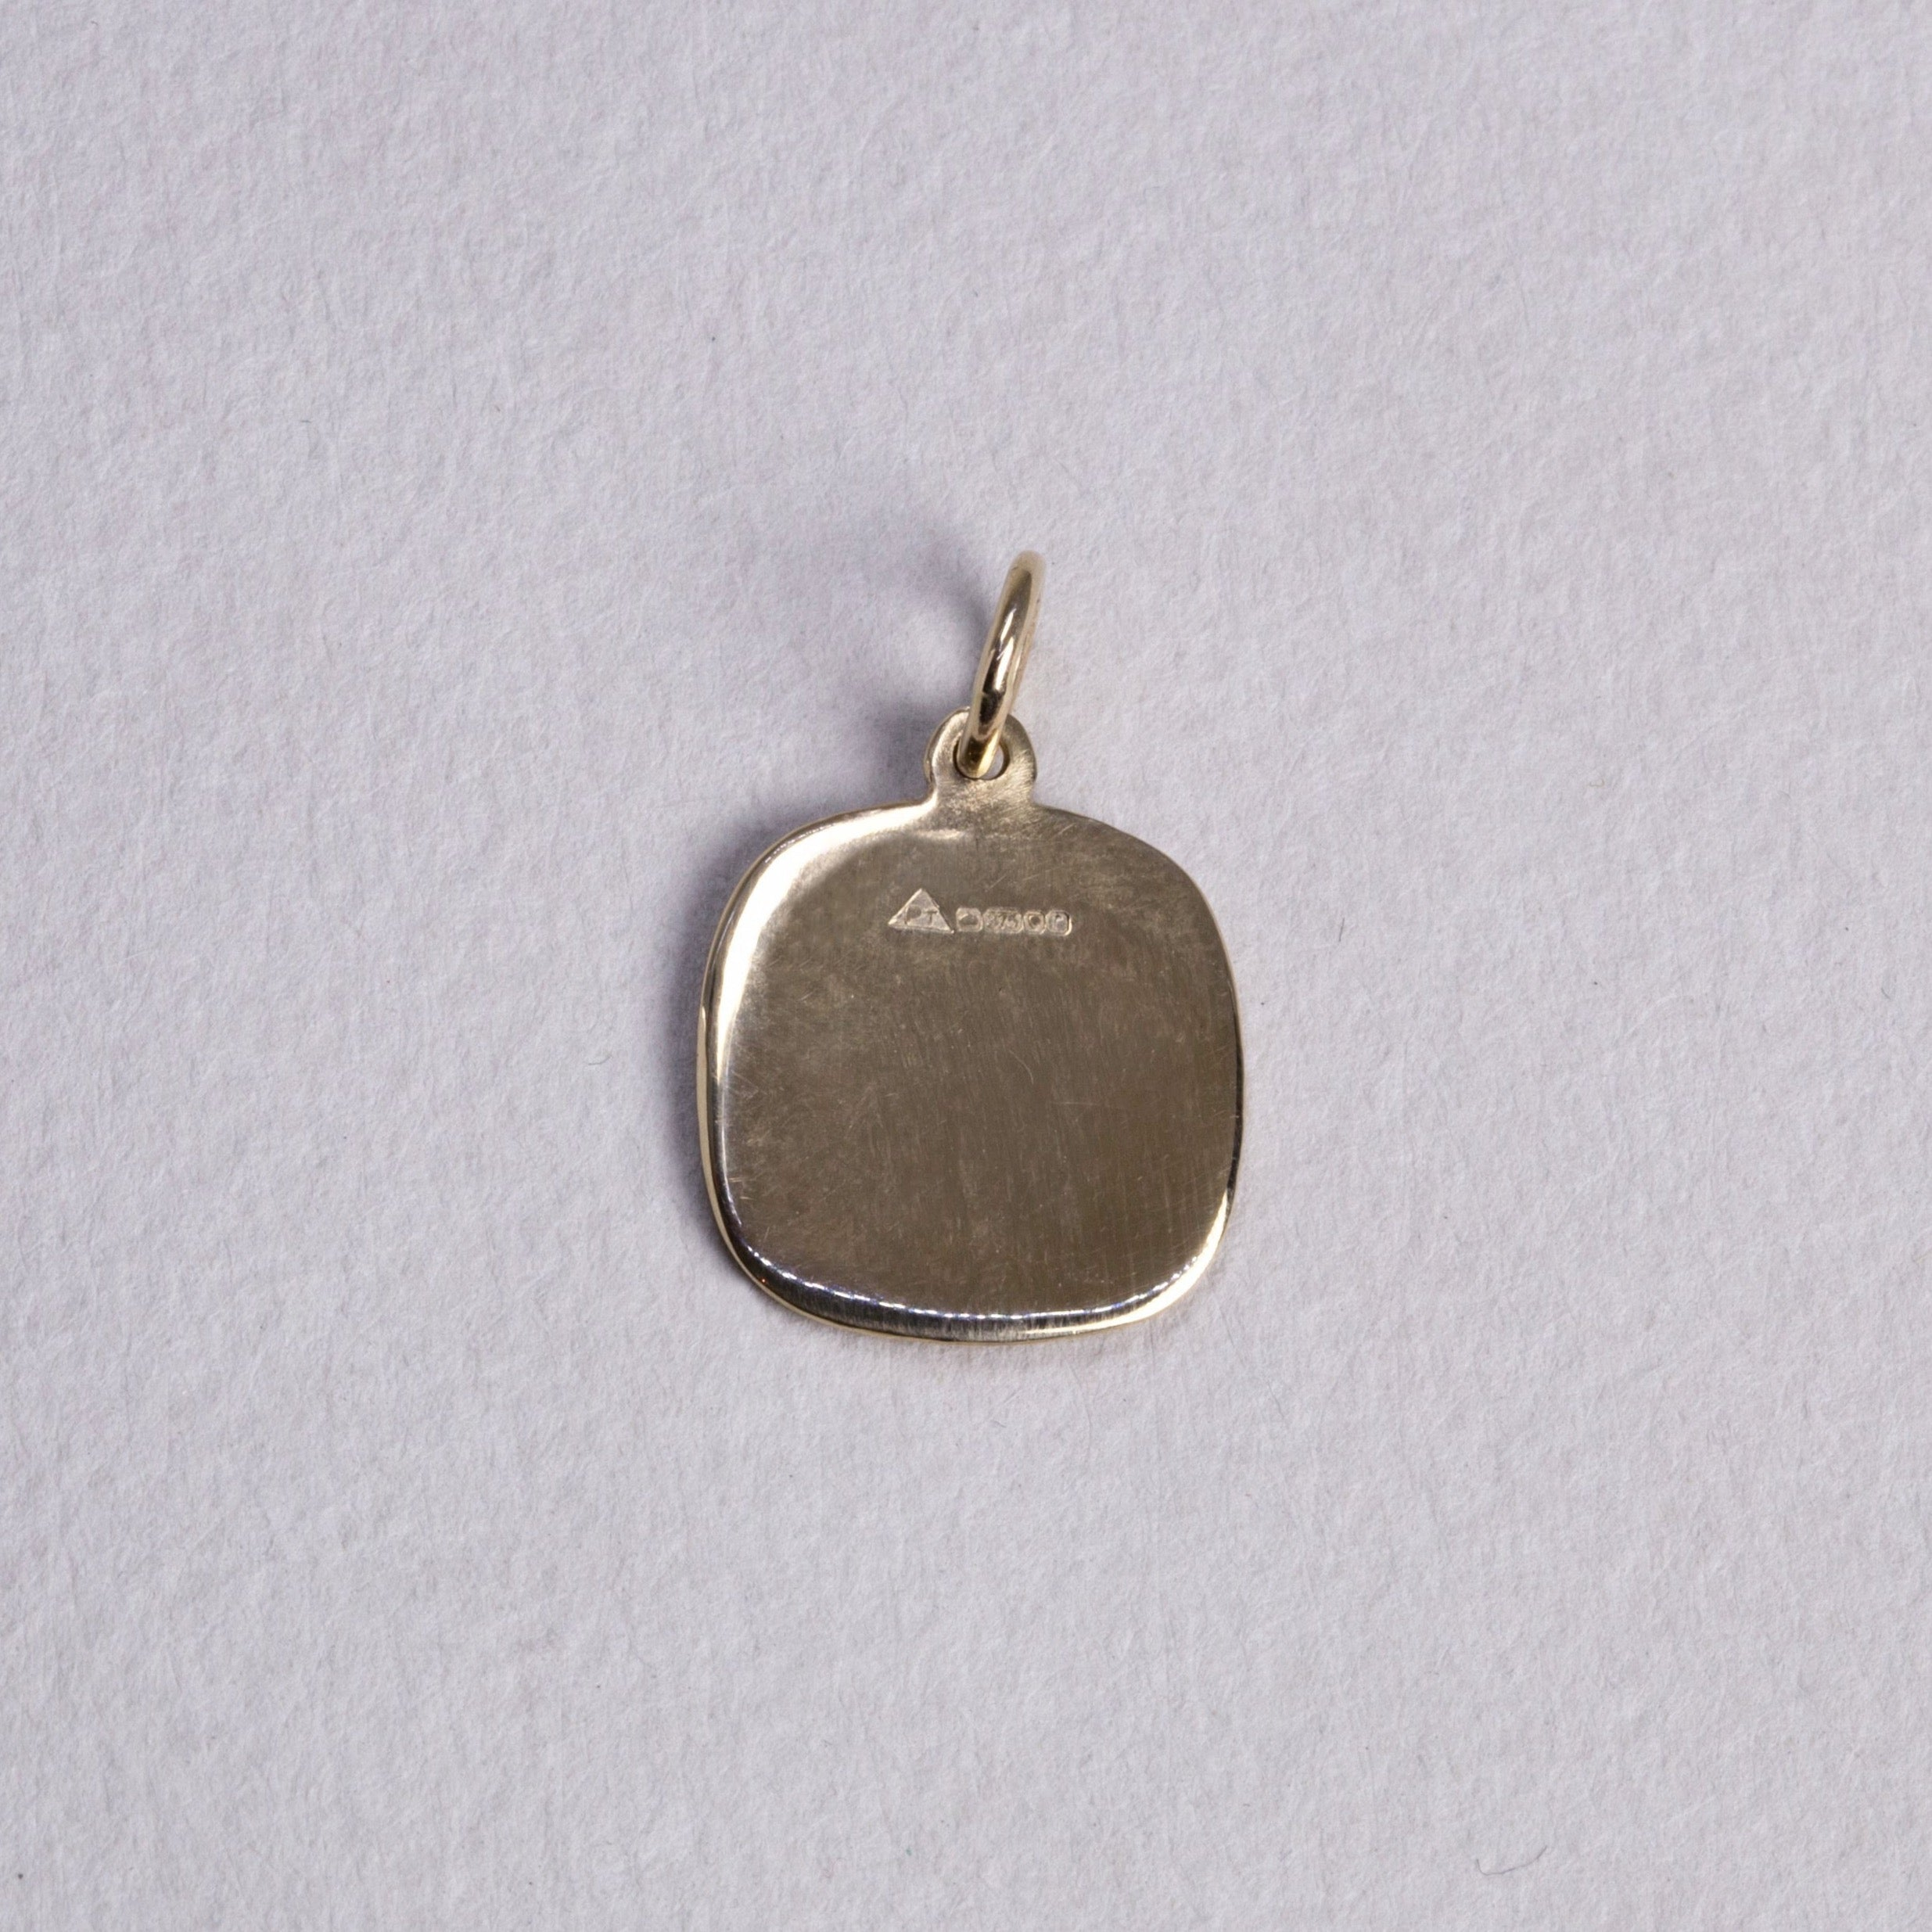 back view of the pendant